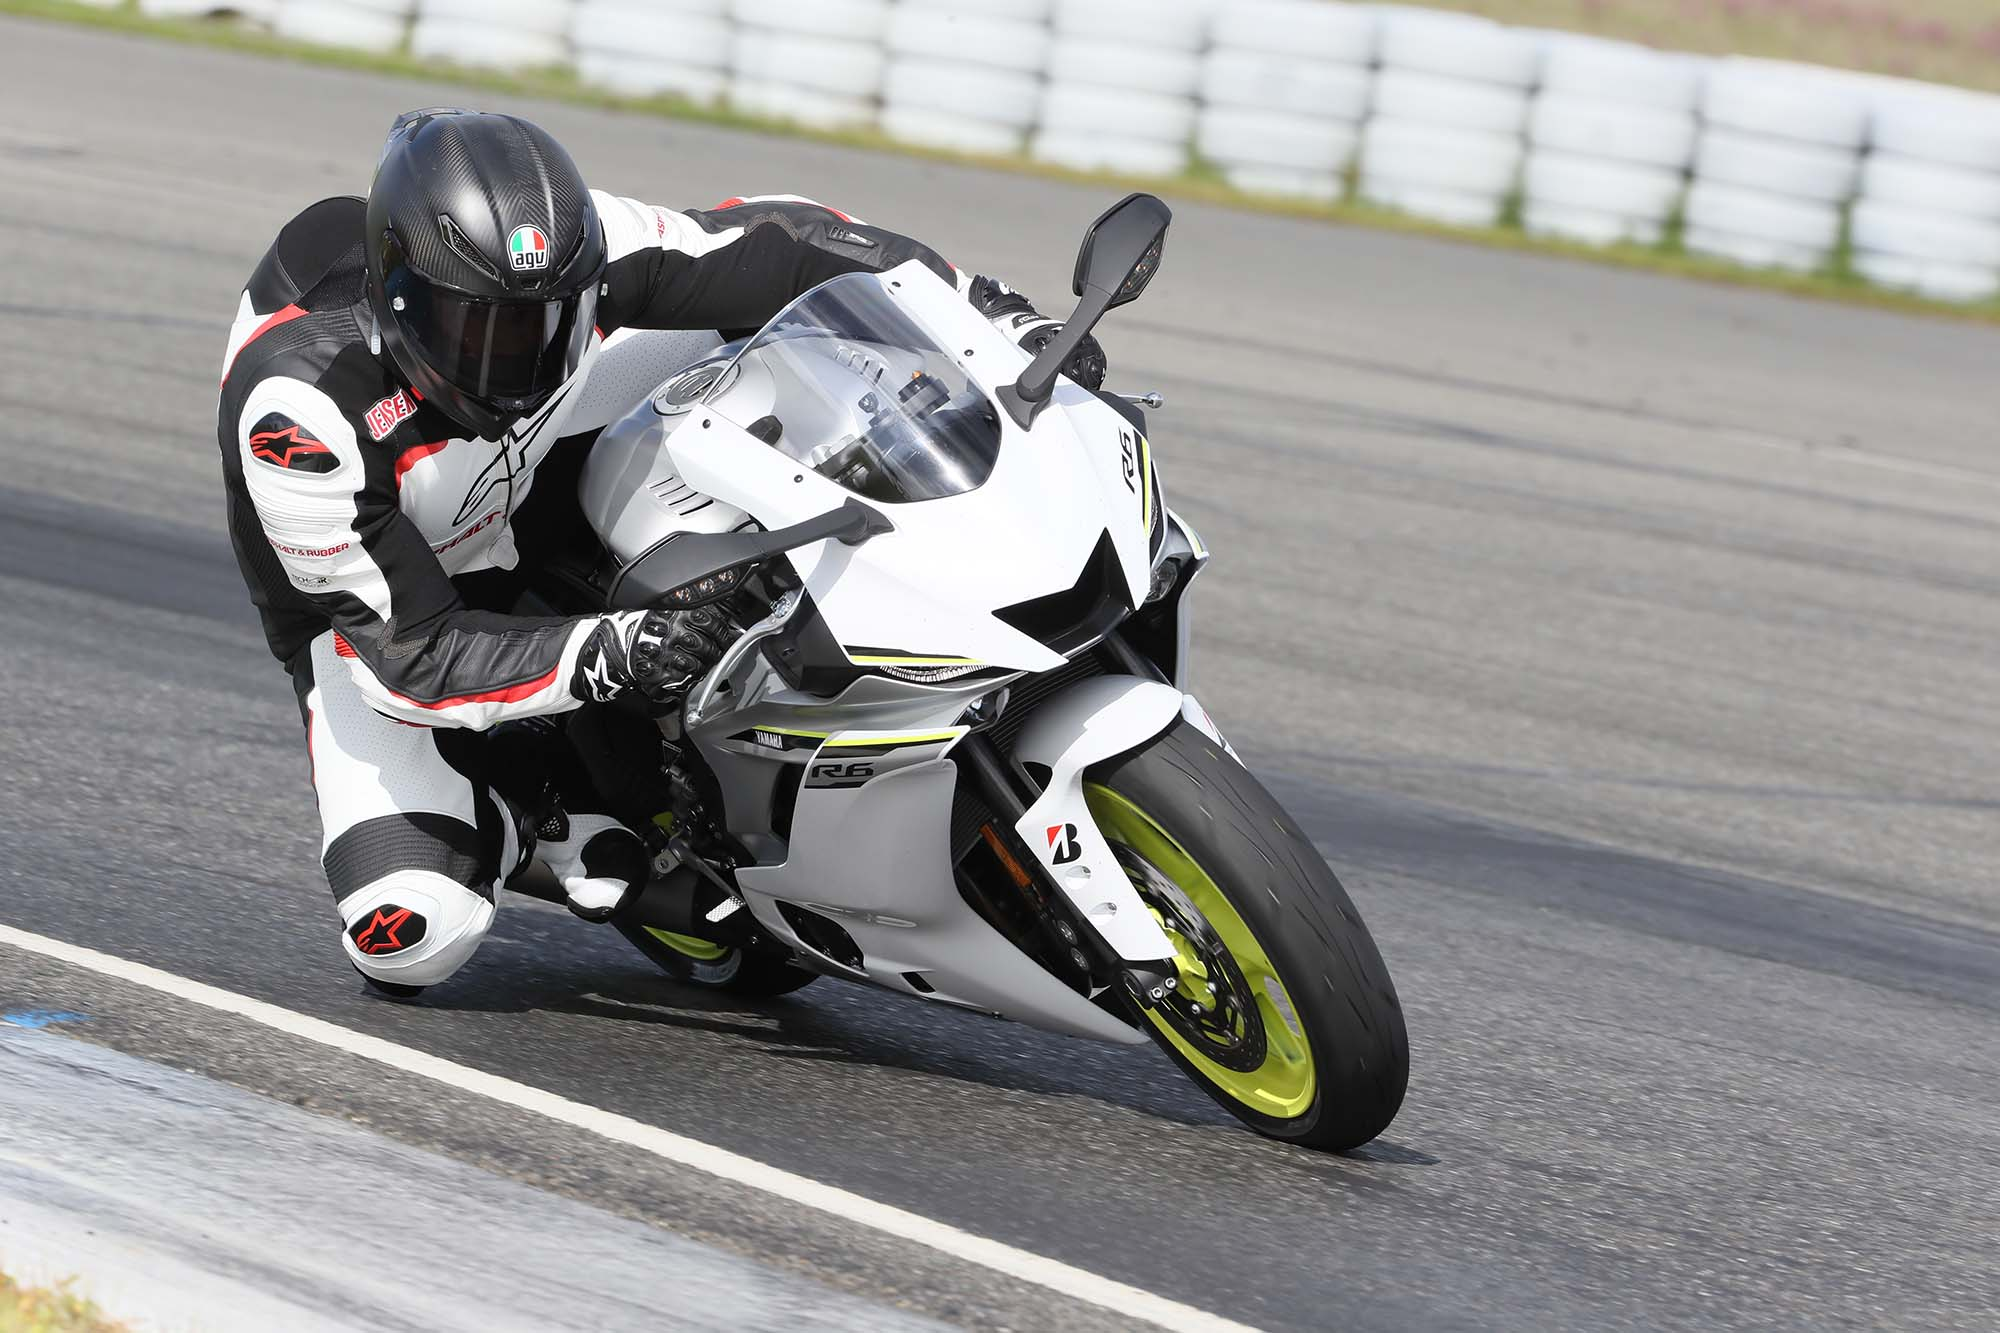 Honda Grom Review >> A Review of the 2017 Yamaha YZF-R6 - Asphalt & Rubber